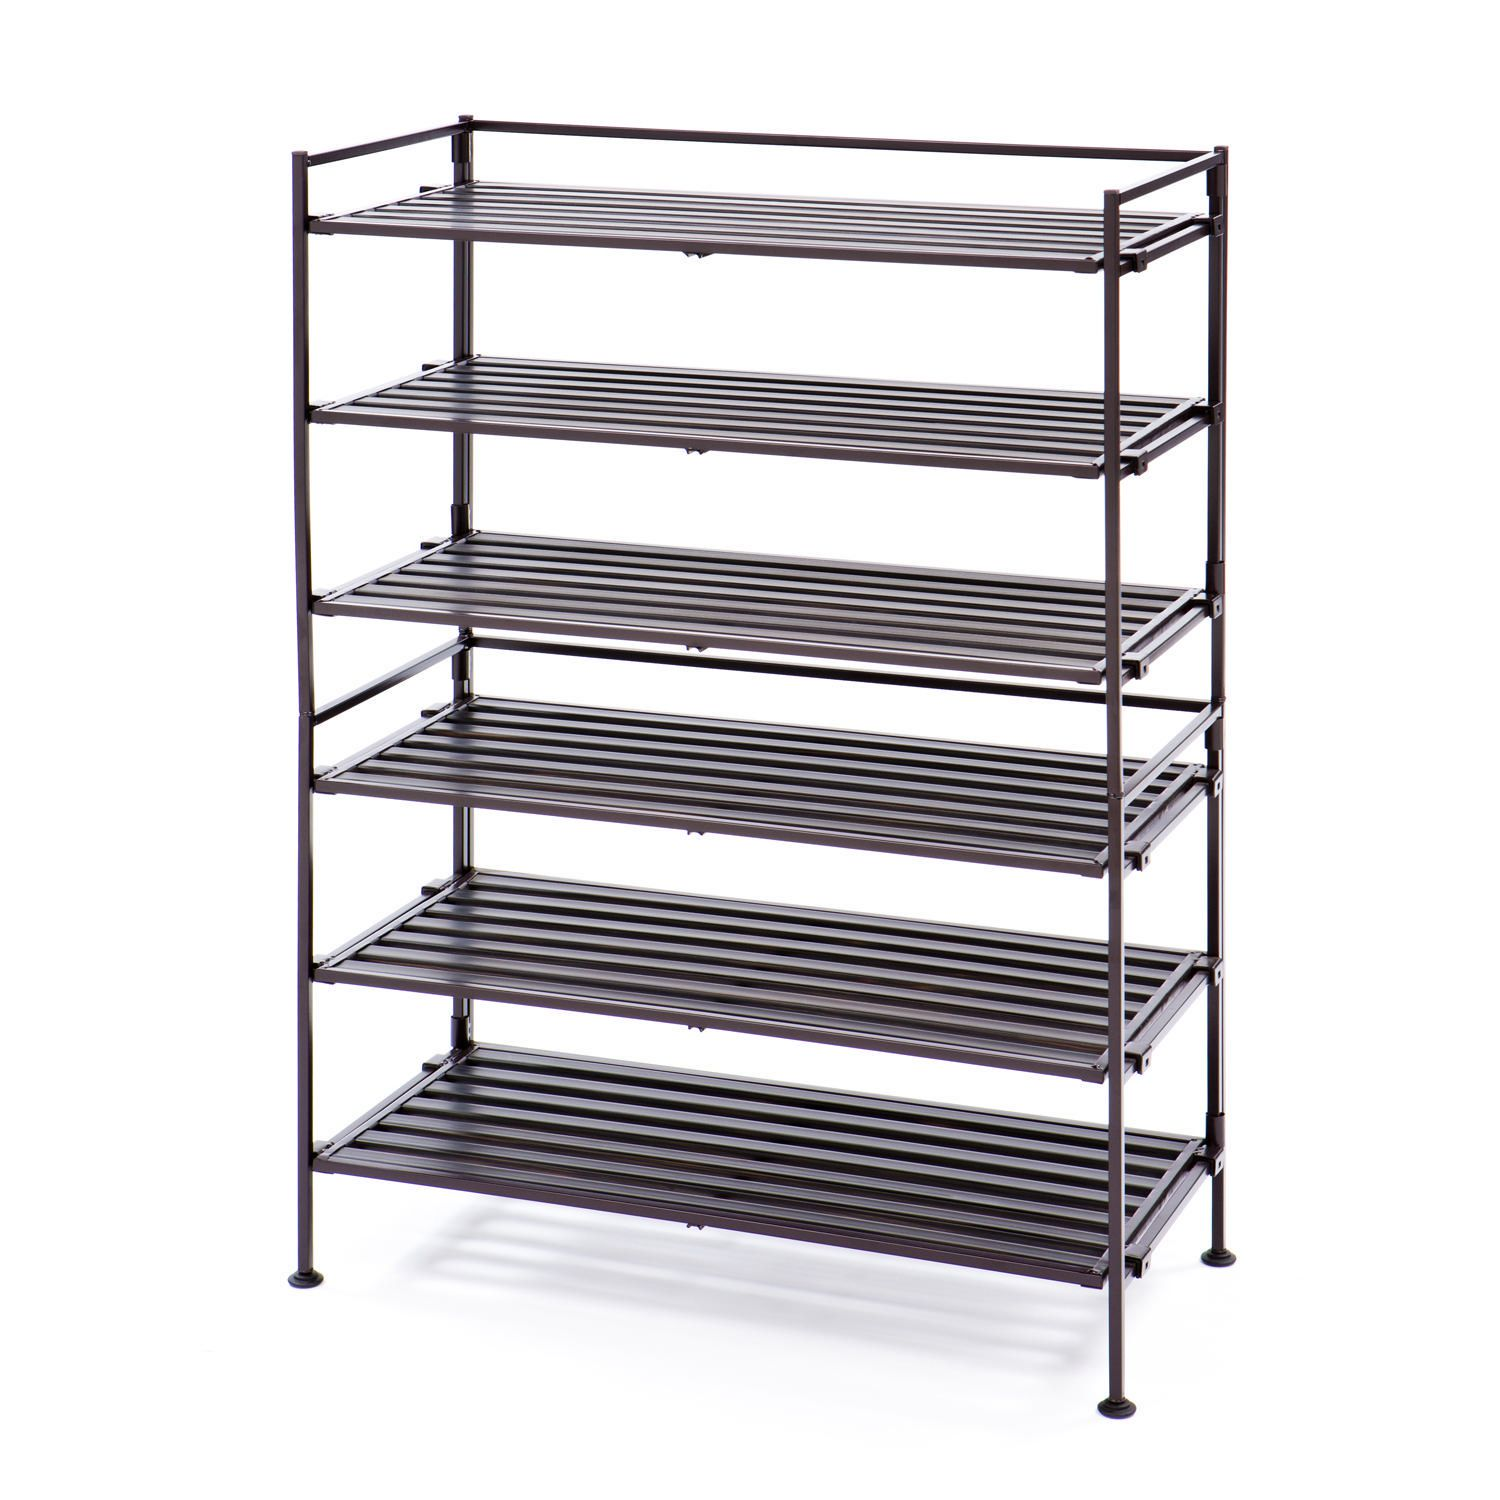 Shoe Rack Target | Shoes Shelf | Wall Mounted Shoe Rack